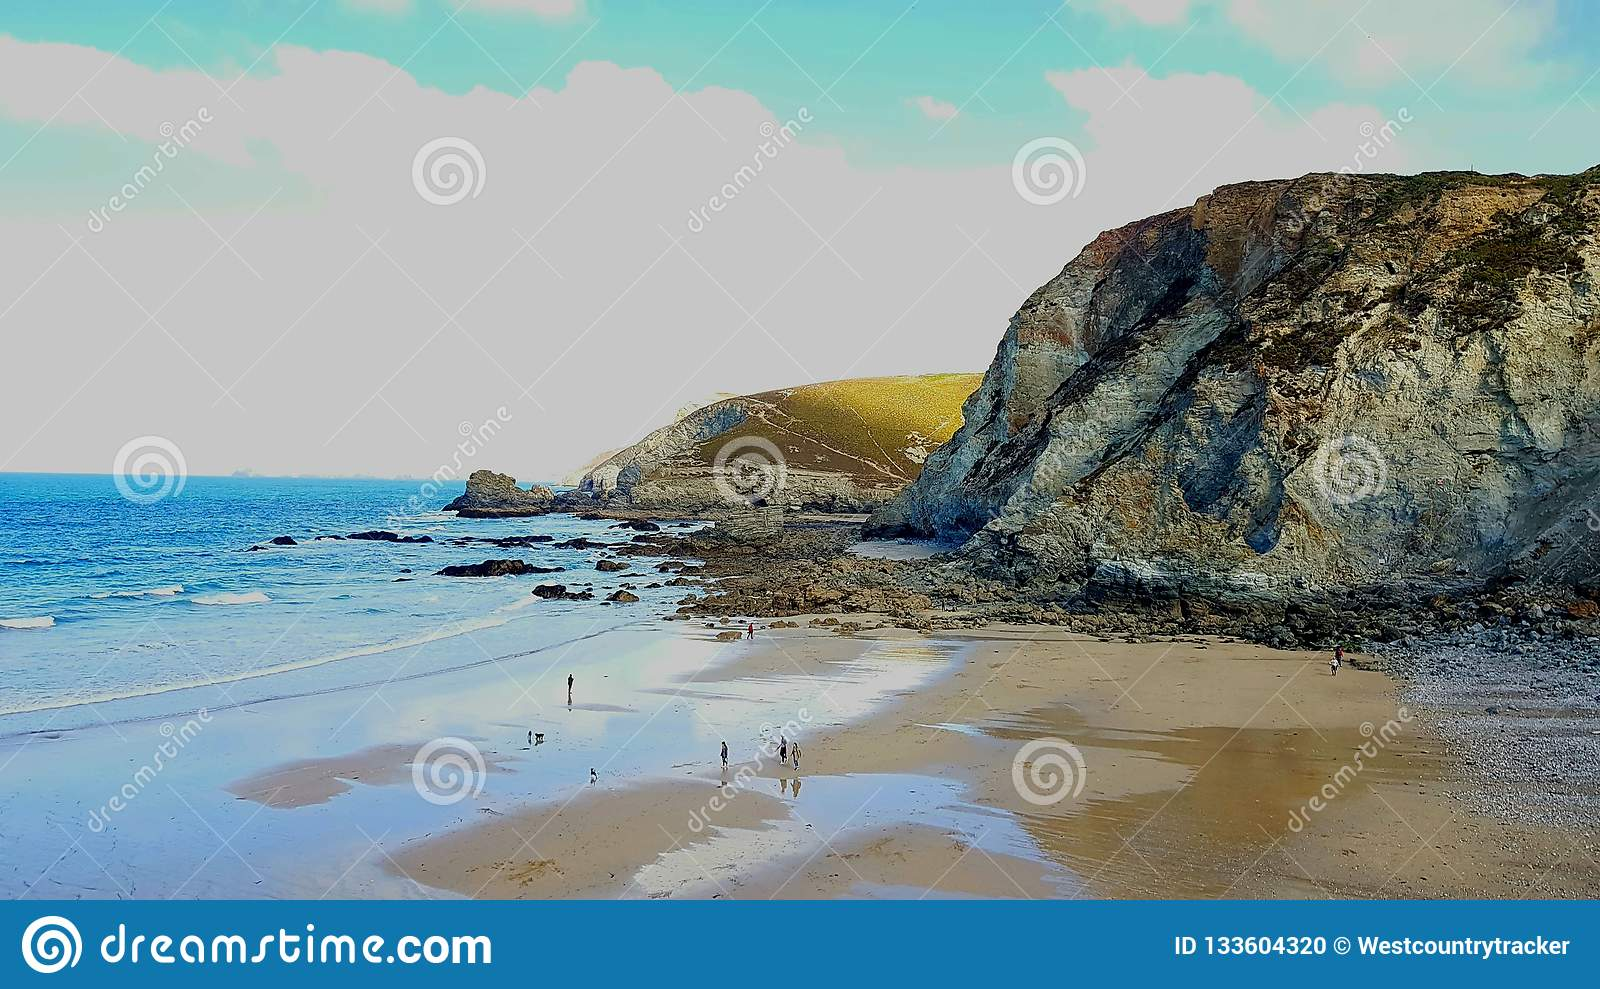 St Agnes is a civil parish and a large village on the north coast of Cornwall, England,